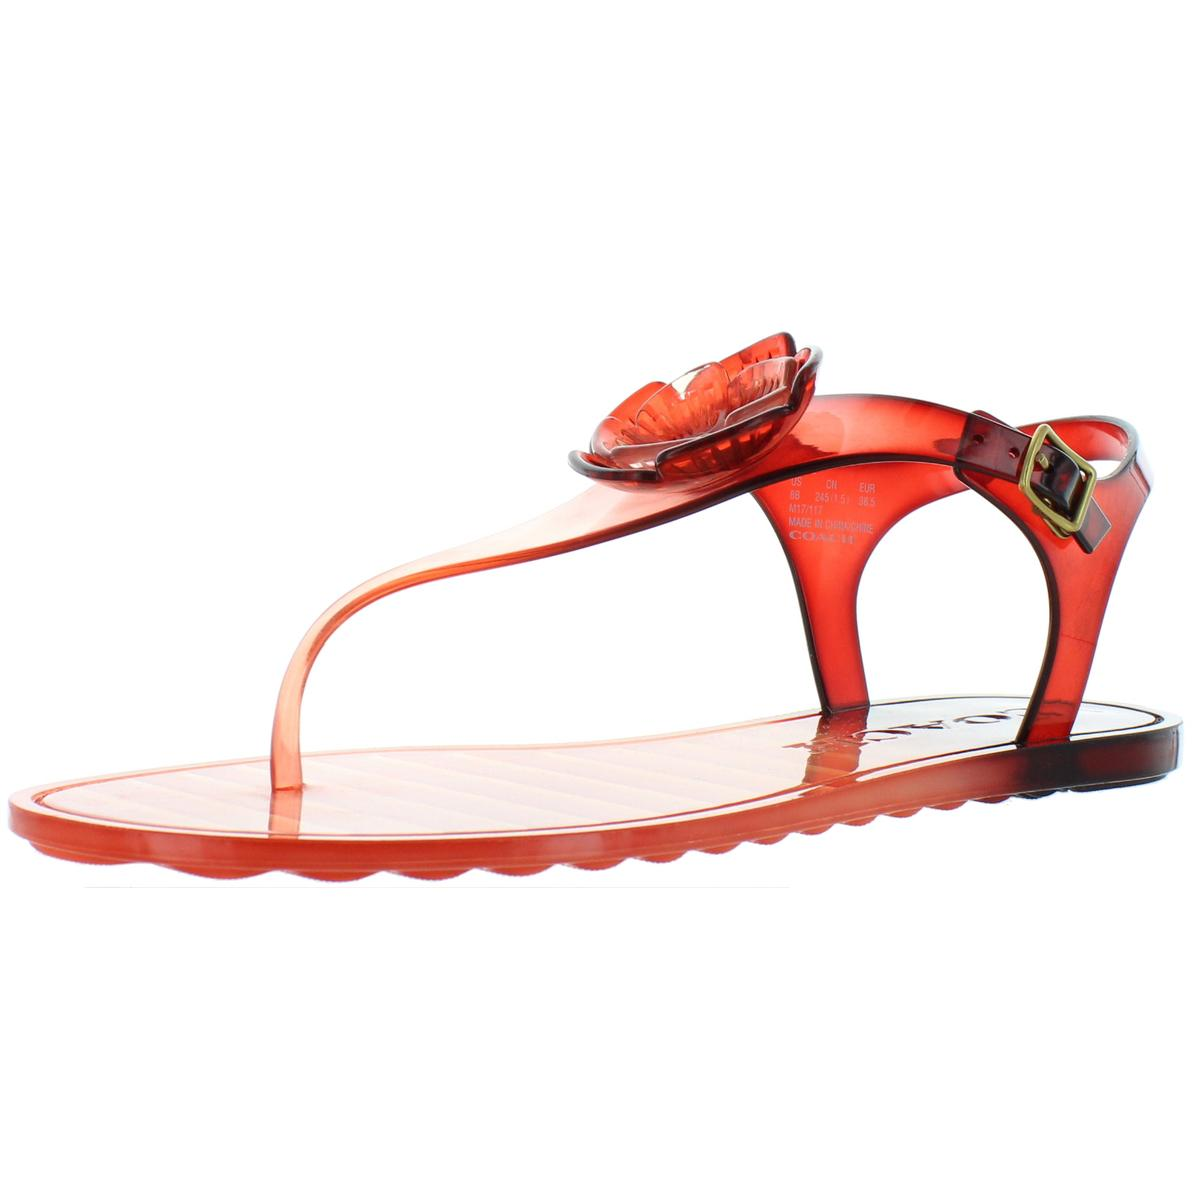 a447f84d3 Details about Coach Womens Tea Rose Jelly Thong Sandals Flats Shoes BHFO  8897